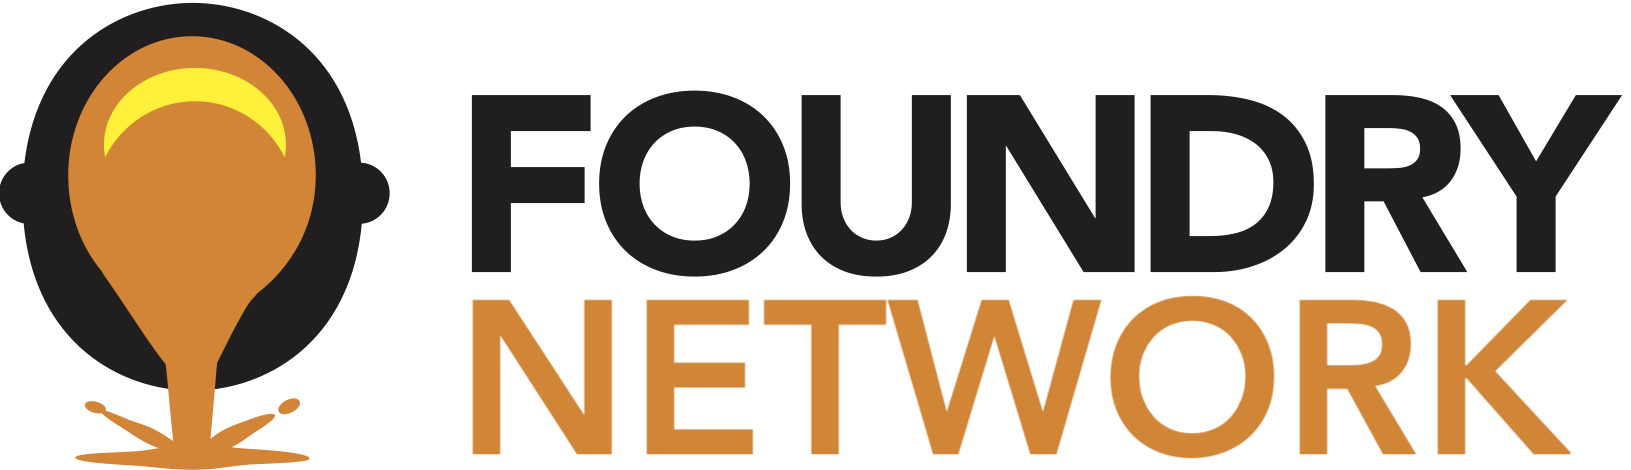 Foundry Network